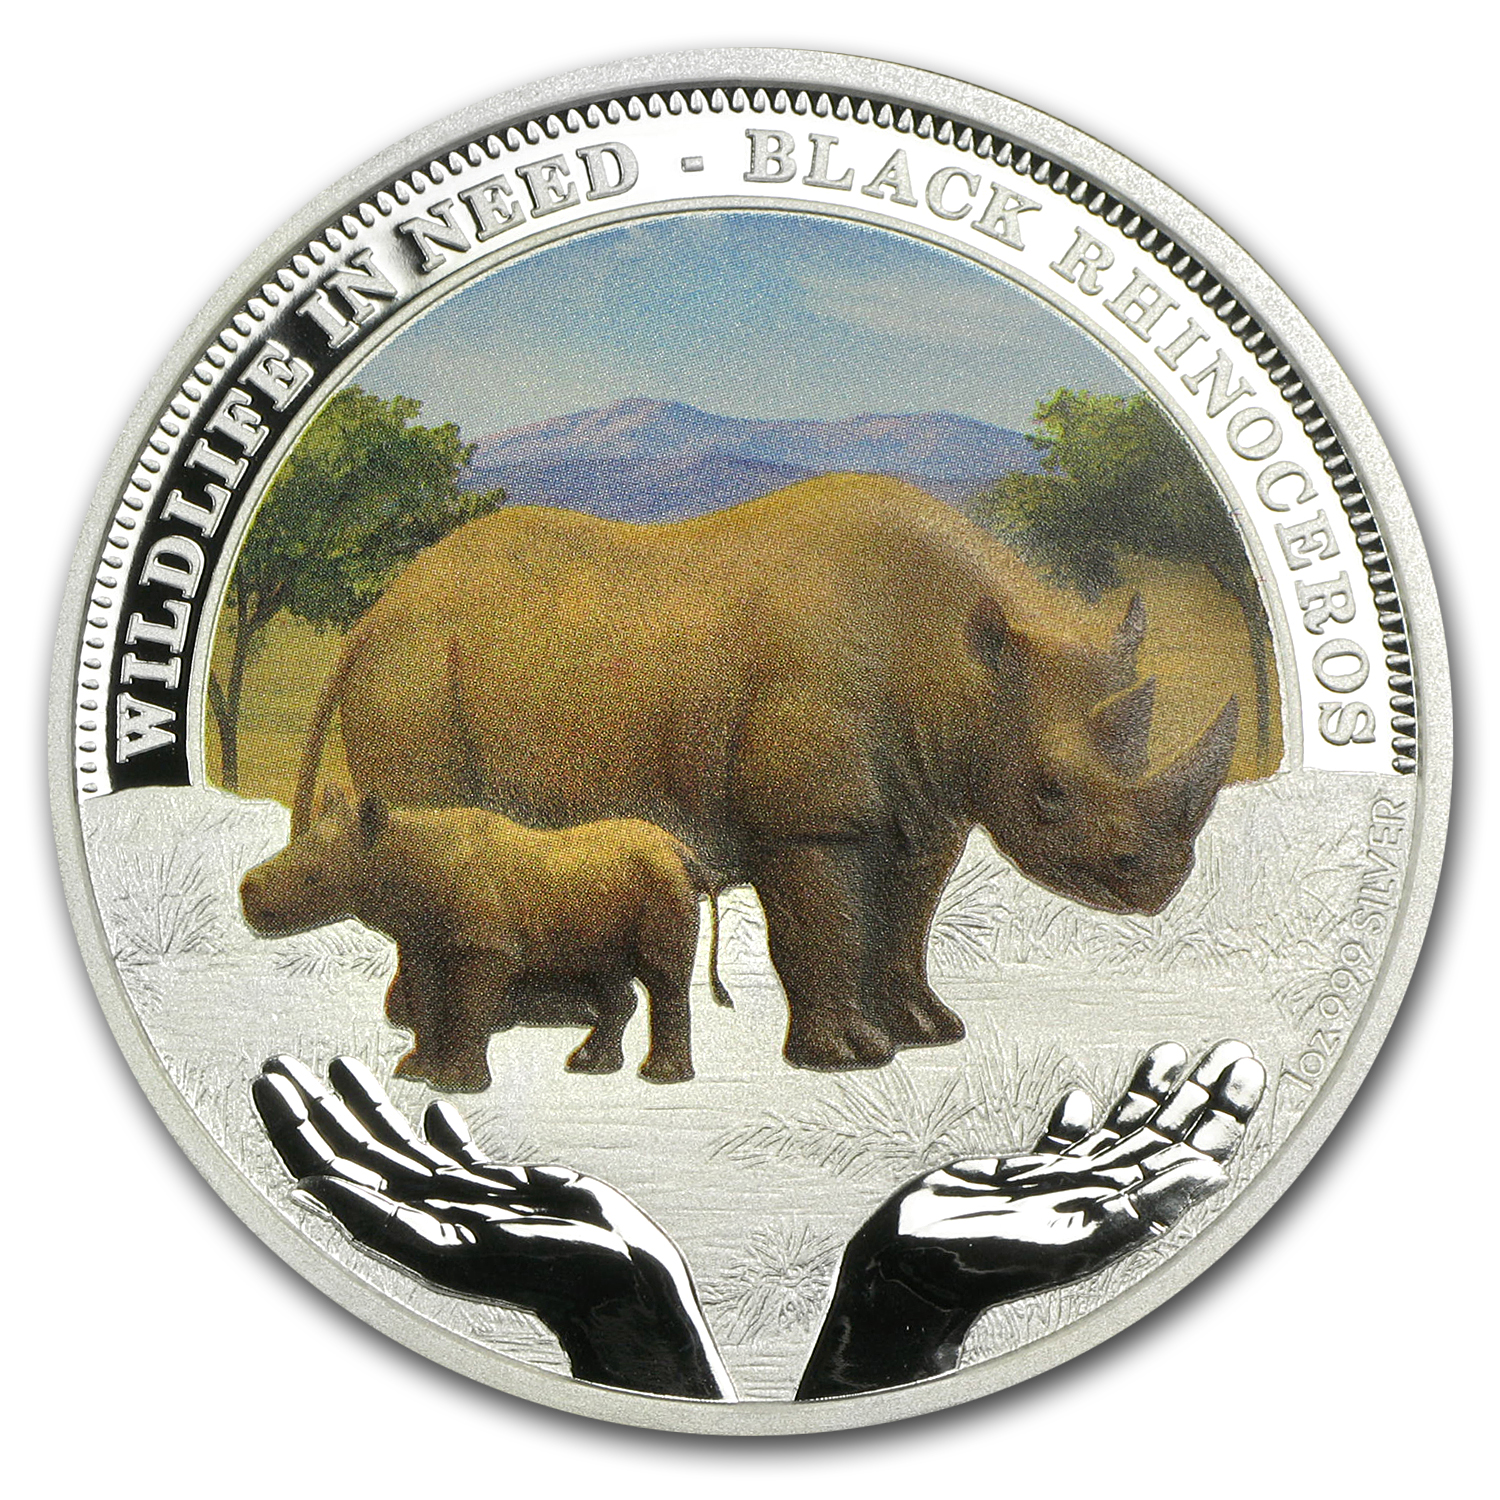 2012 1 oz Silver Tuvalu Black Rhinoceros Proof